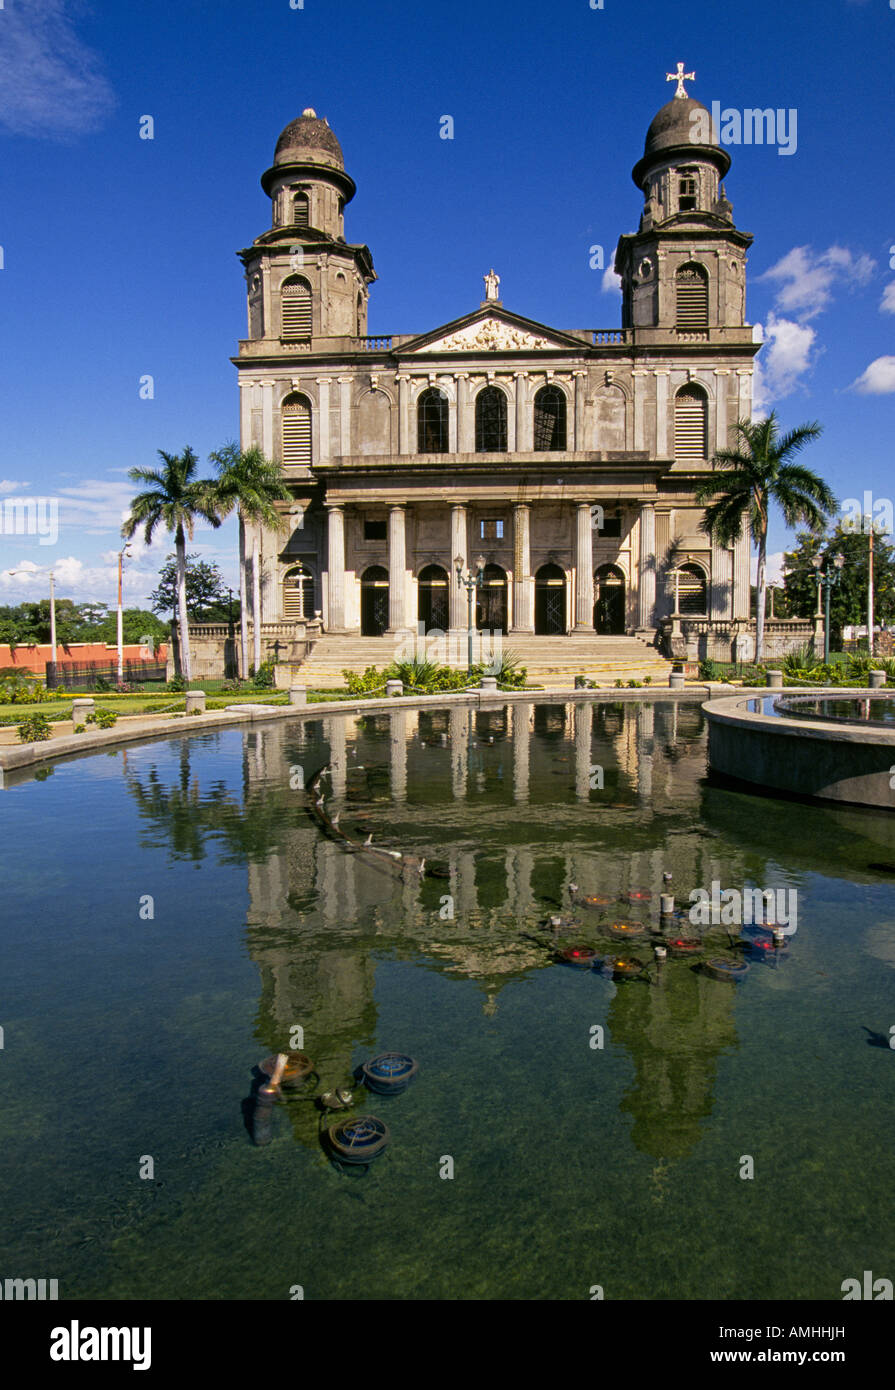 CENTRAL AMERICA NICARAGUA A view of the historic Catholic cathedral along the malecon in Managua Nicaragua - Stock Image